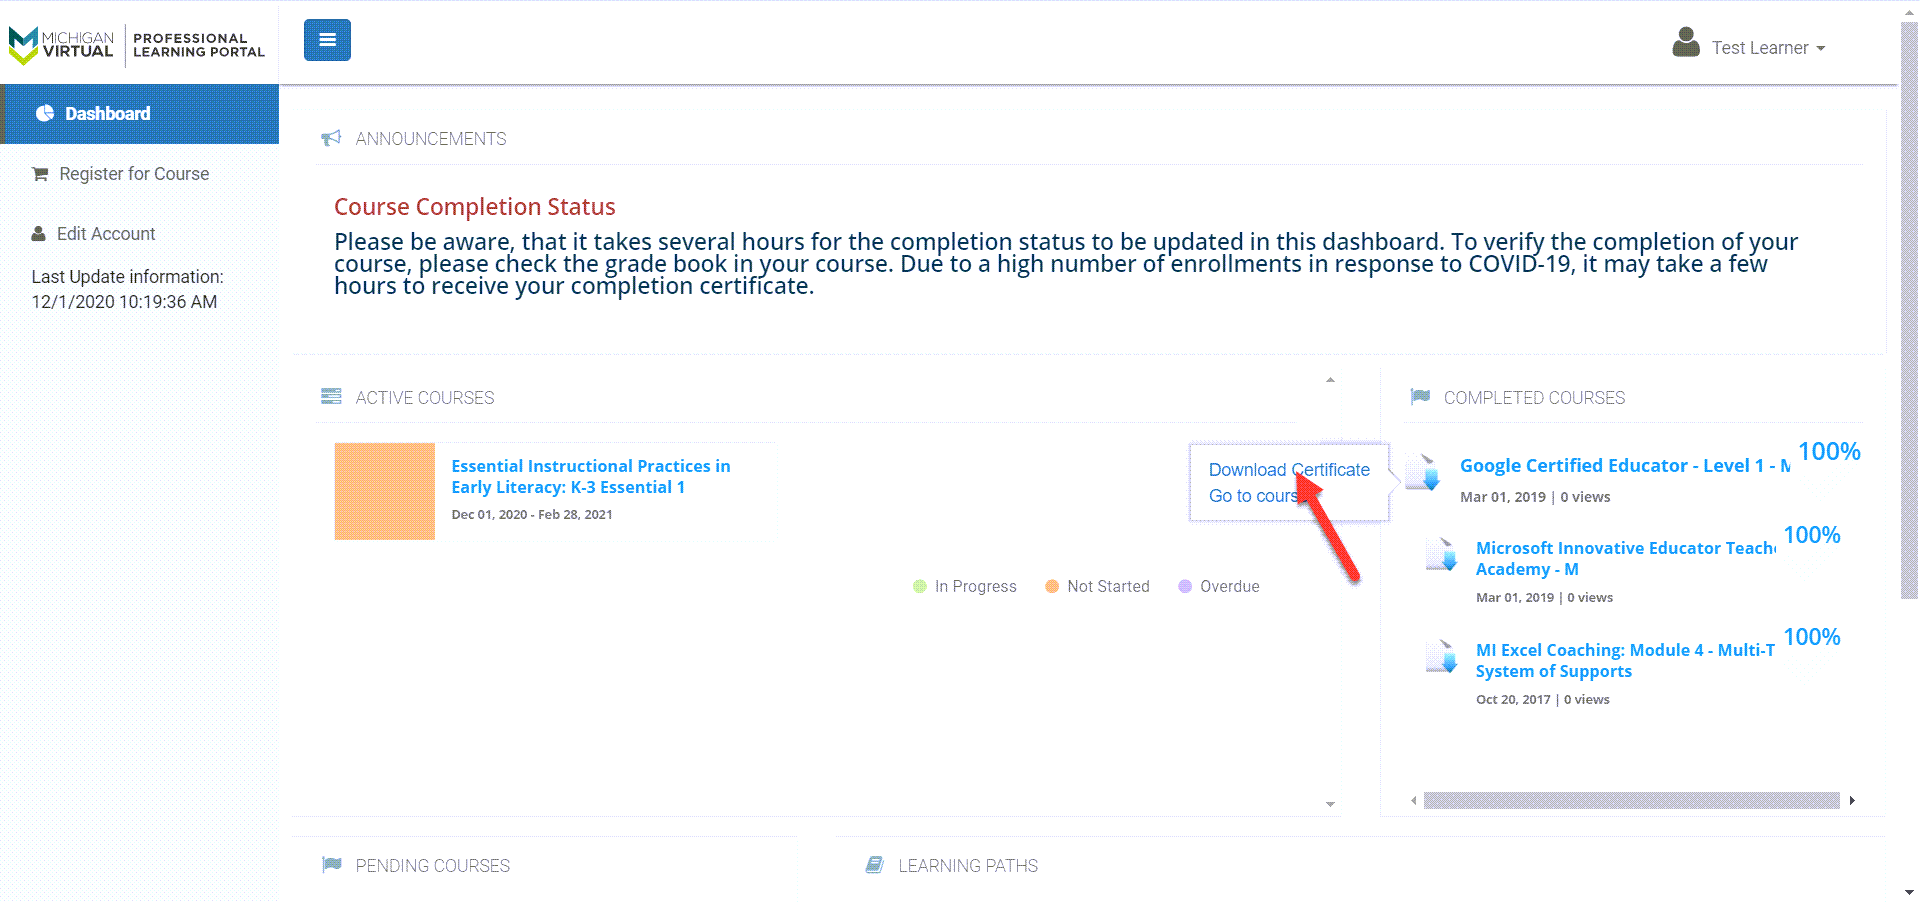 On the right side of the page the Completed Courses module is shown. With the first completed course selected, there is an option to download the certificate. An arrow points to that option.